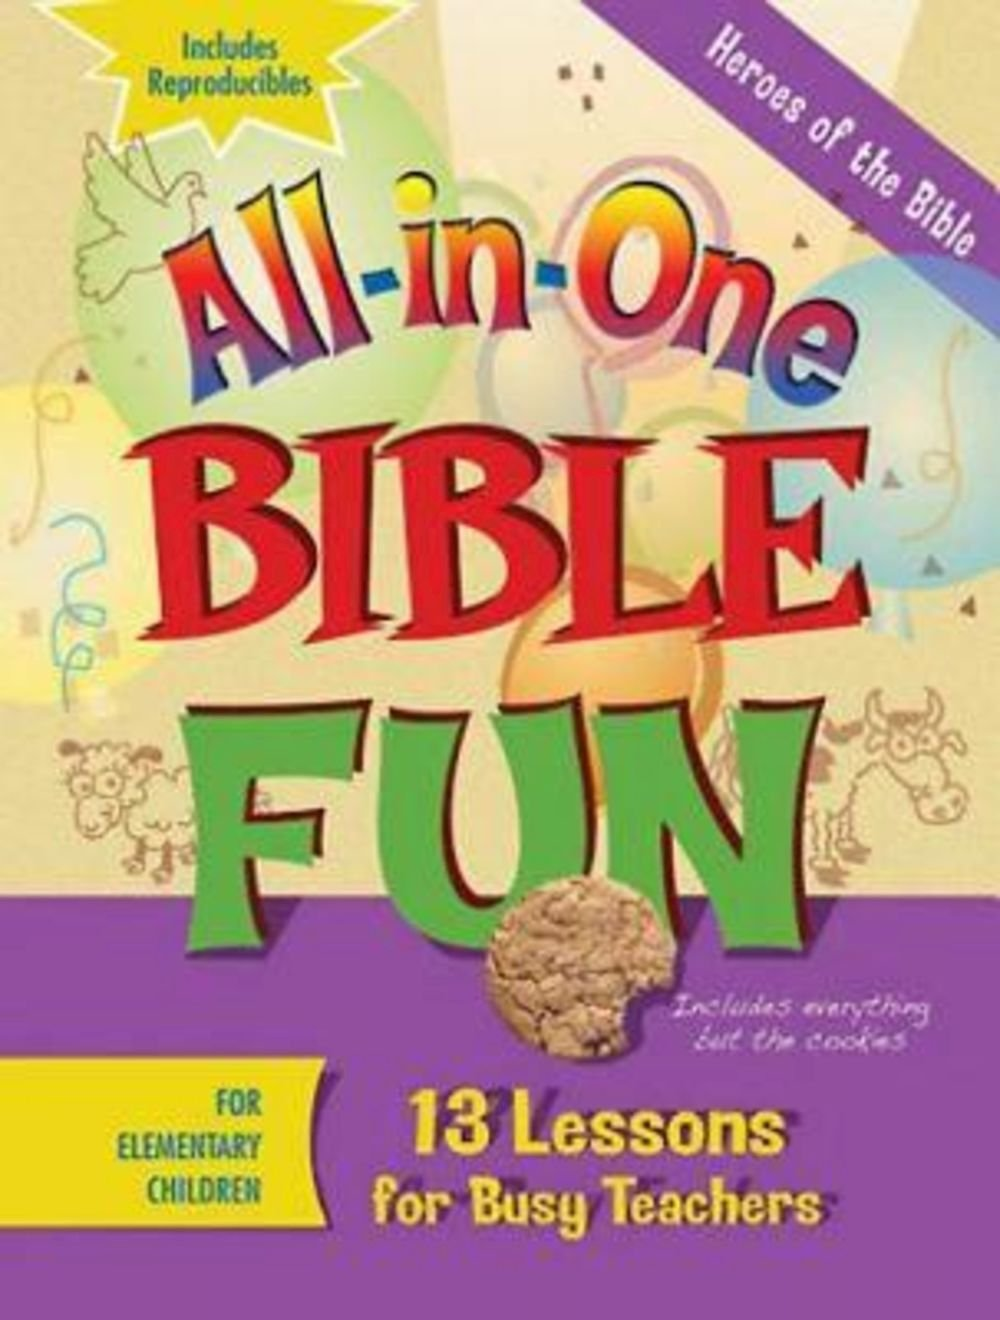 All-in-One Bible Fun for Elementary Children: Heroes of the Bible: 13 Lessons for Busy Teachers PDF